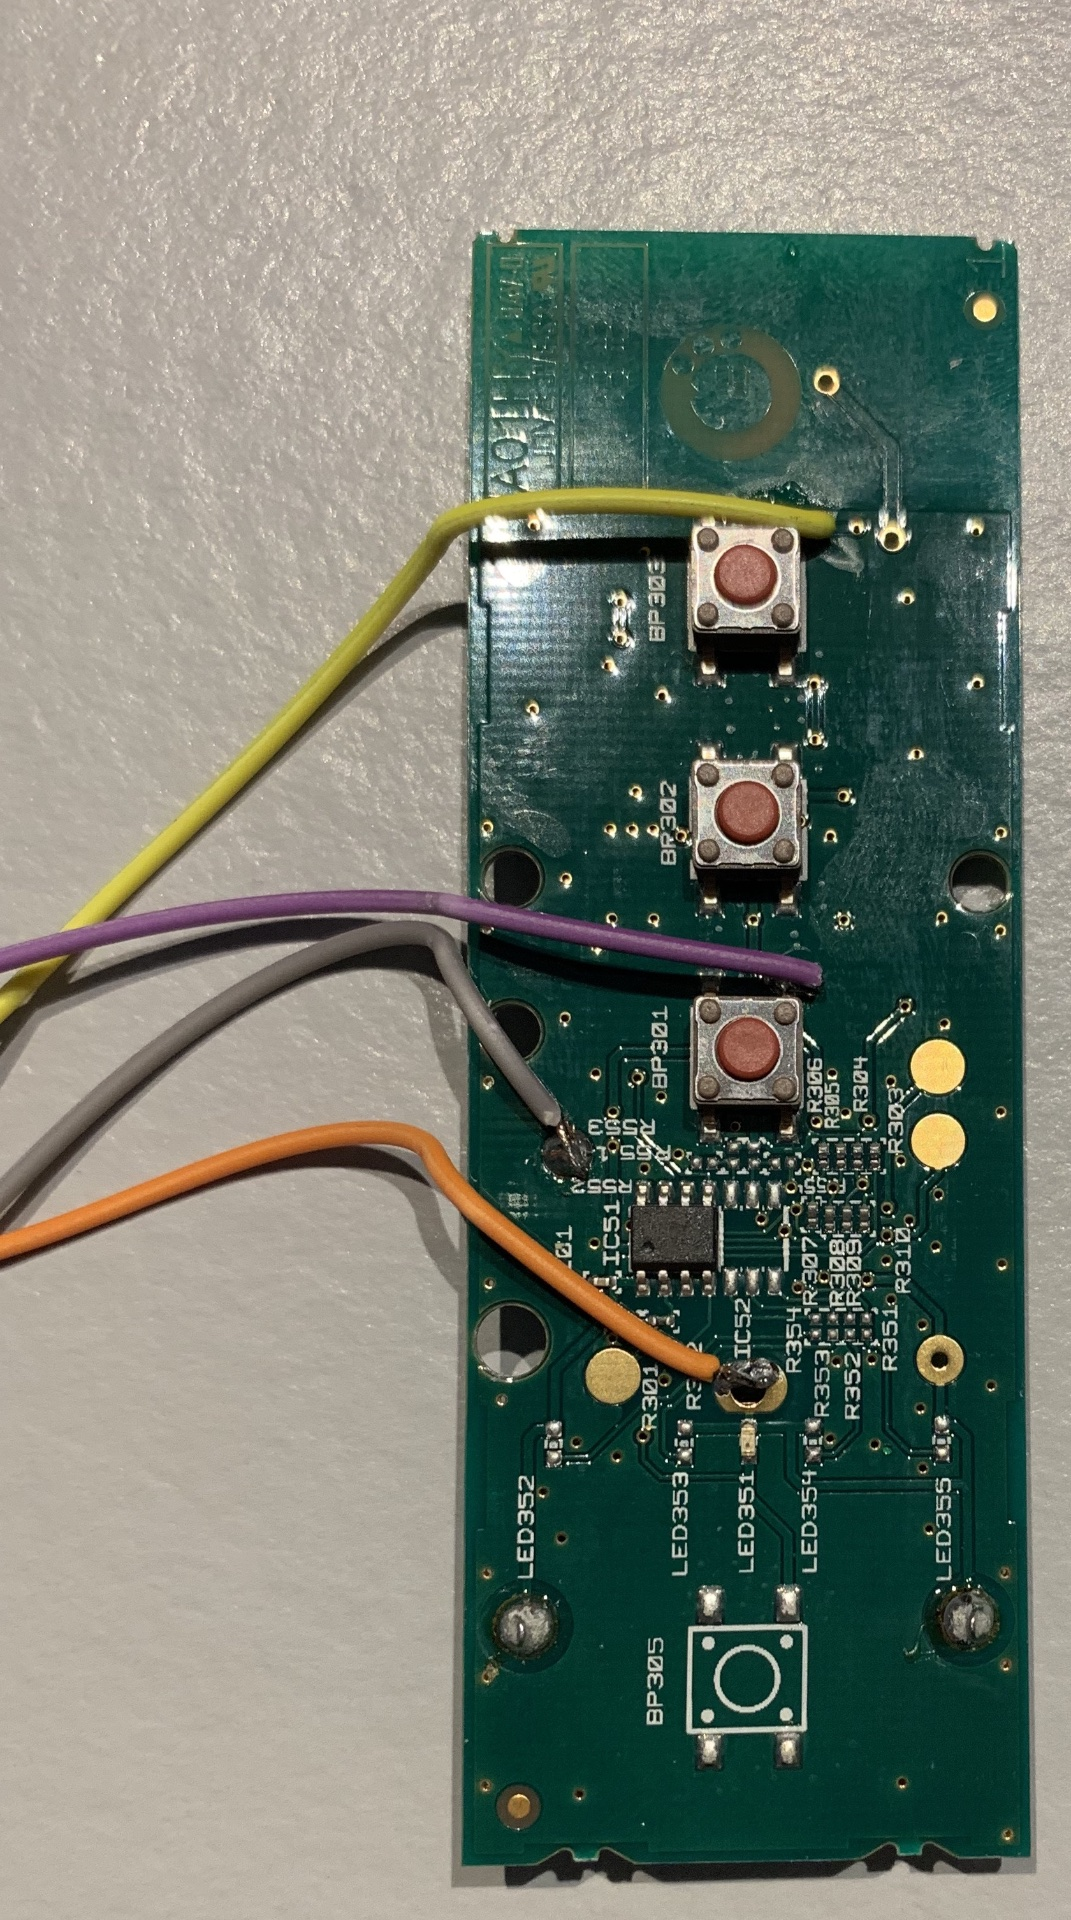 Logic board with soldered wires